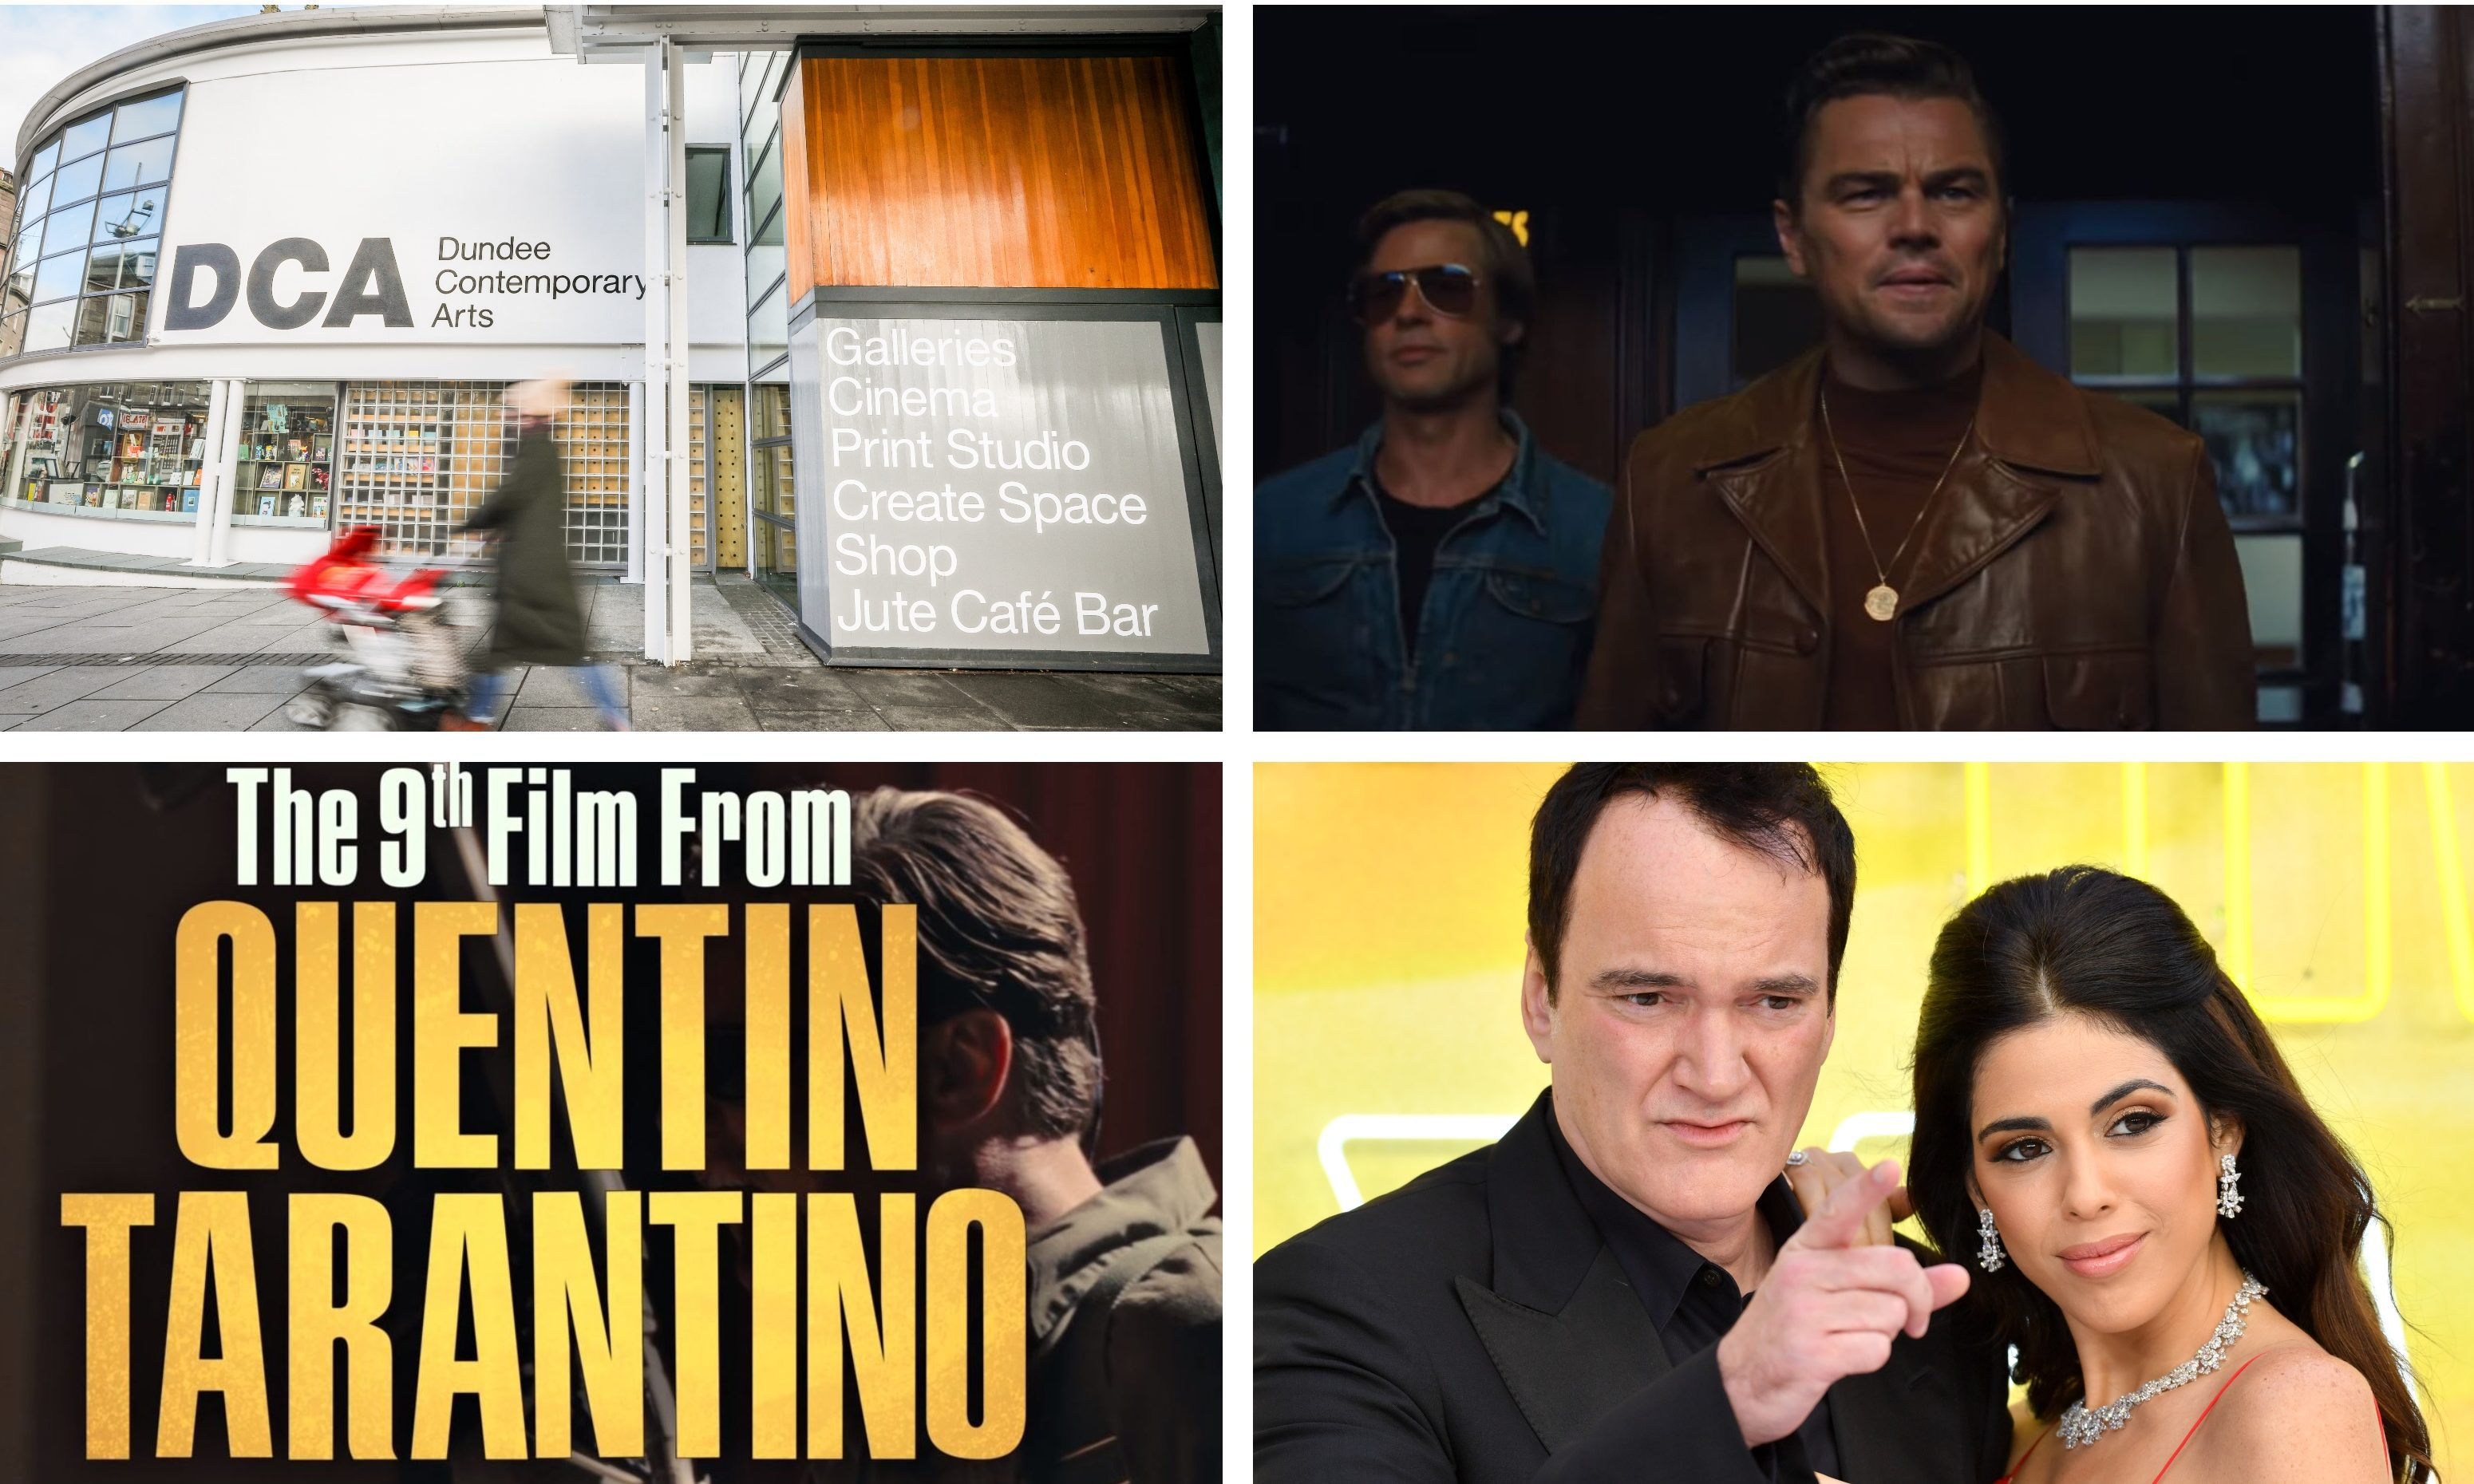 Quentin Tarantino's ninth film Once Upon A Time IN Hollywood will be released on August 14.